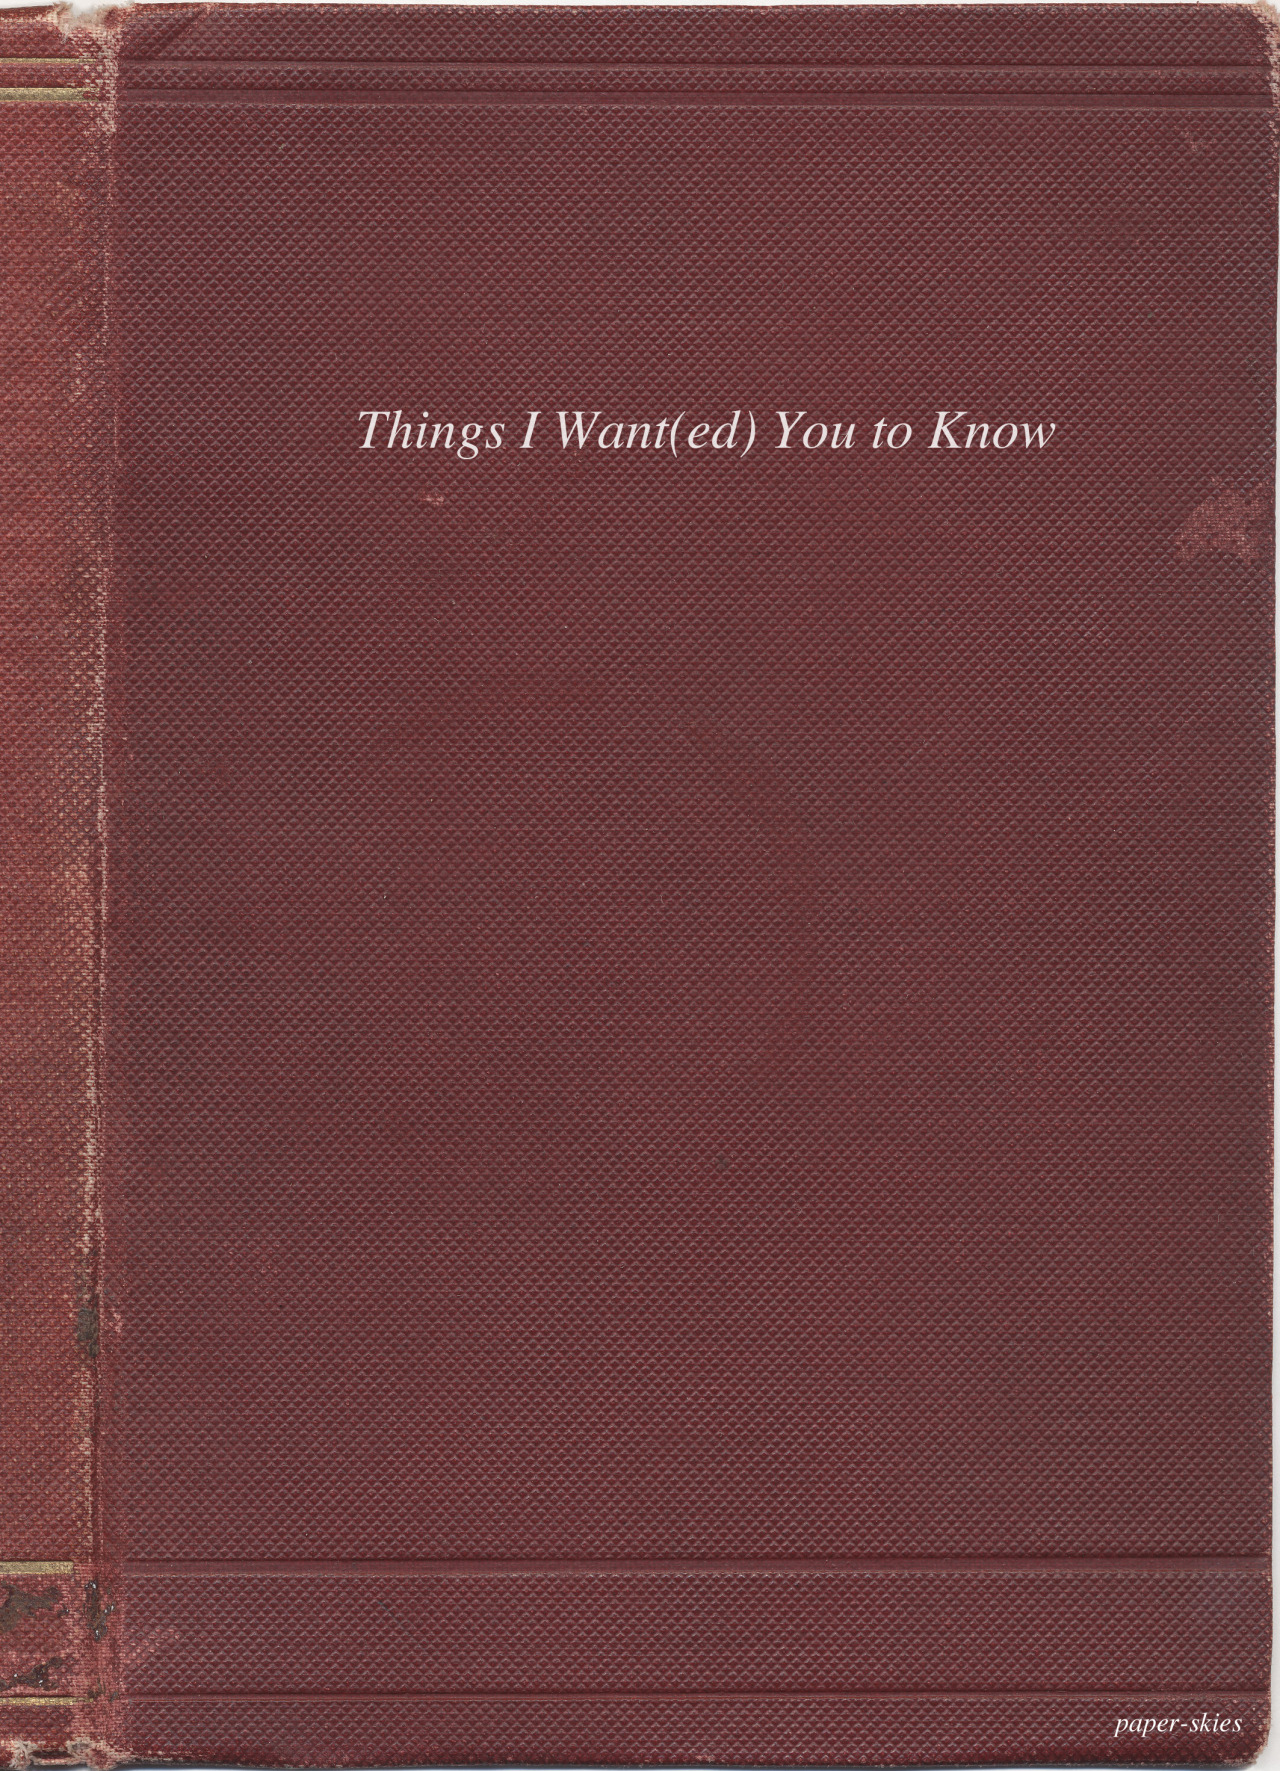 paper-skies:   Things I Want(ed) You to Know